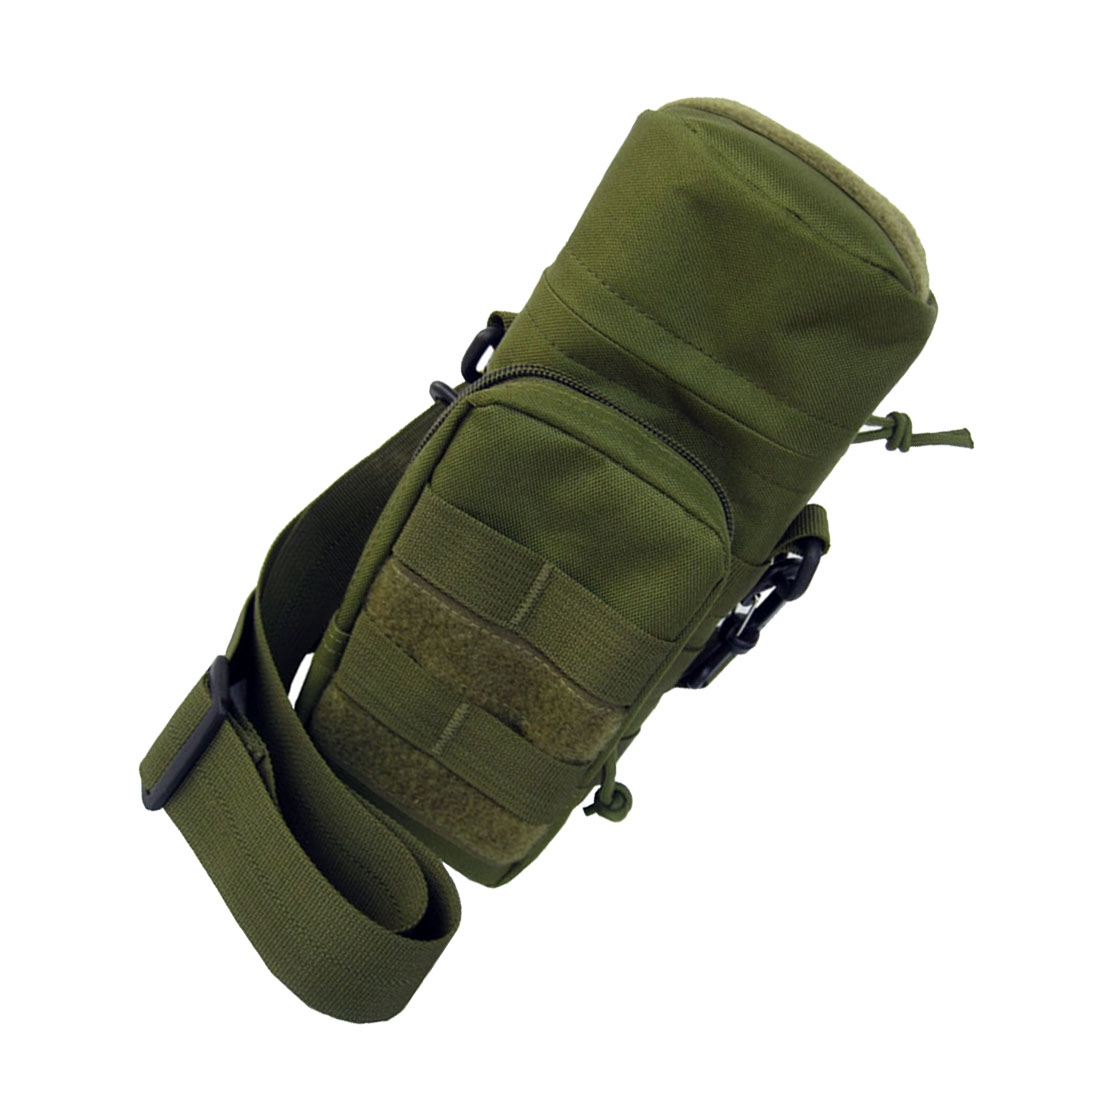 FGGS Hot Molle Zipper back Utility Medic Pouch w Small Mess Pouch war game